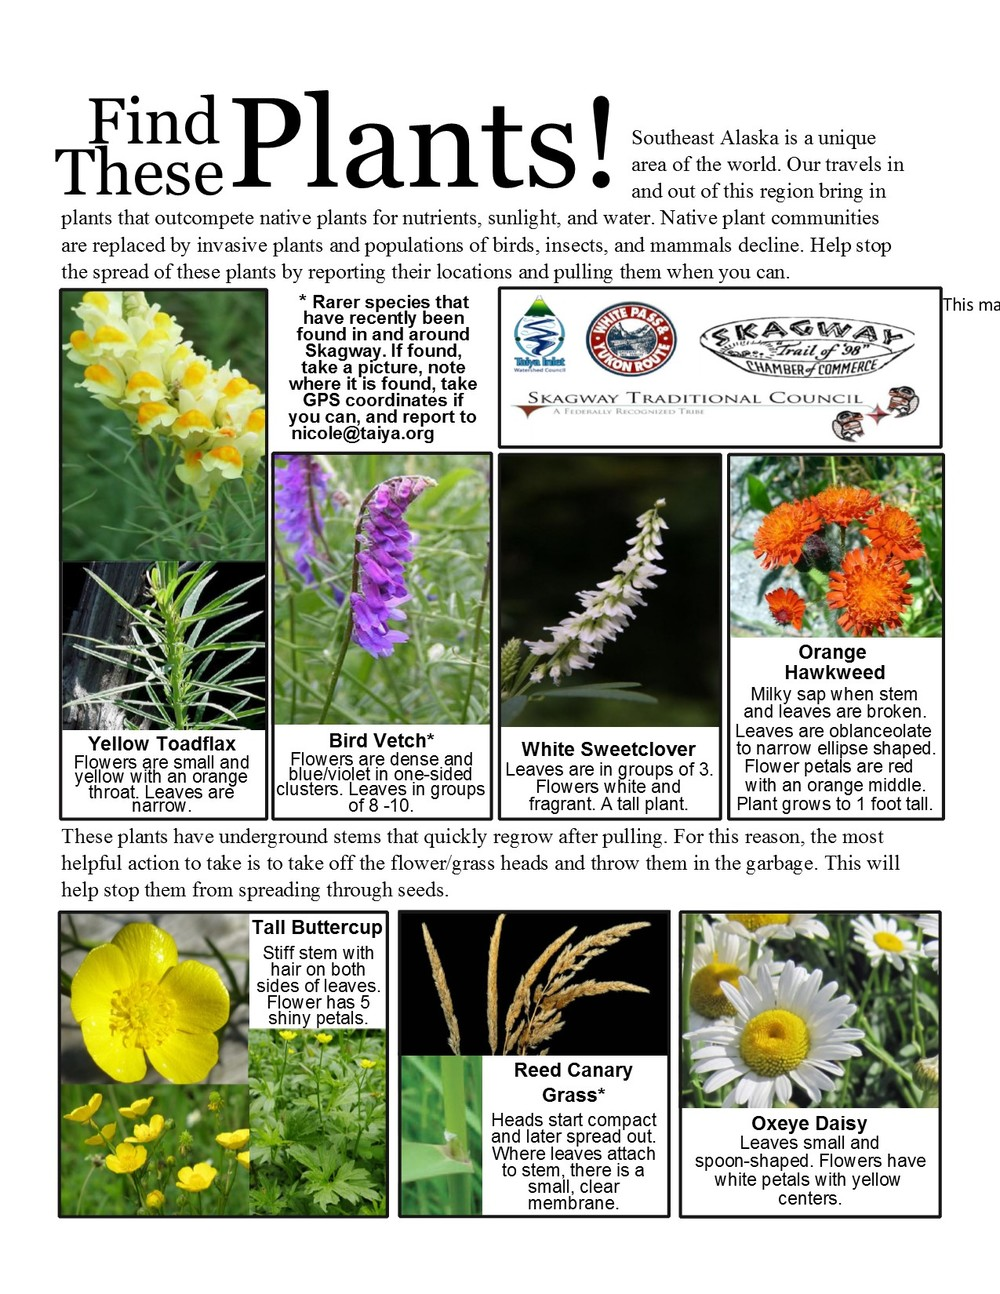 Invasive Species In Skagway Skagway Traditional Council